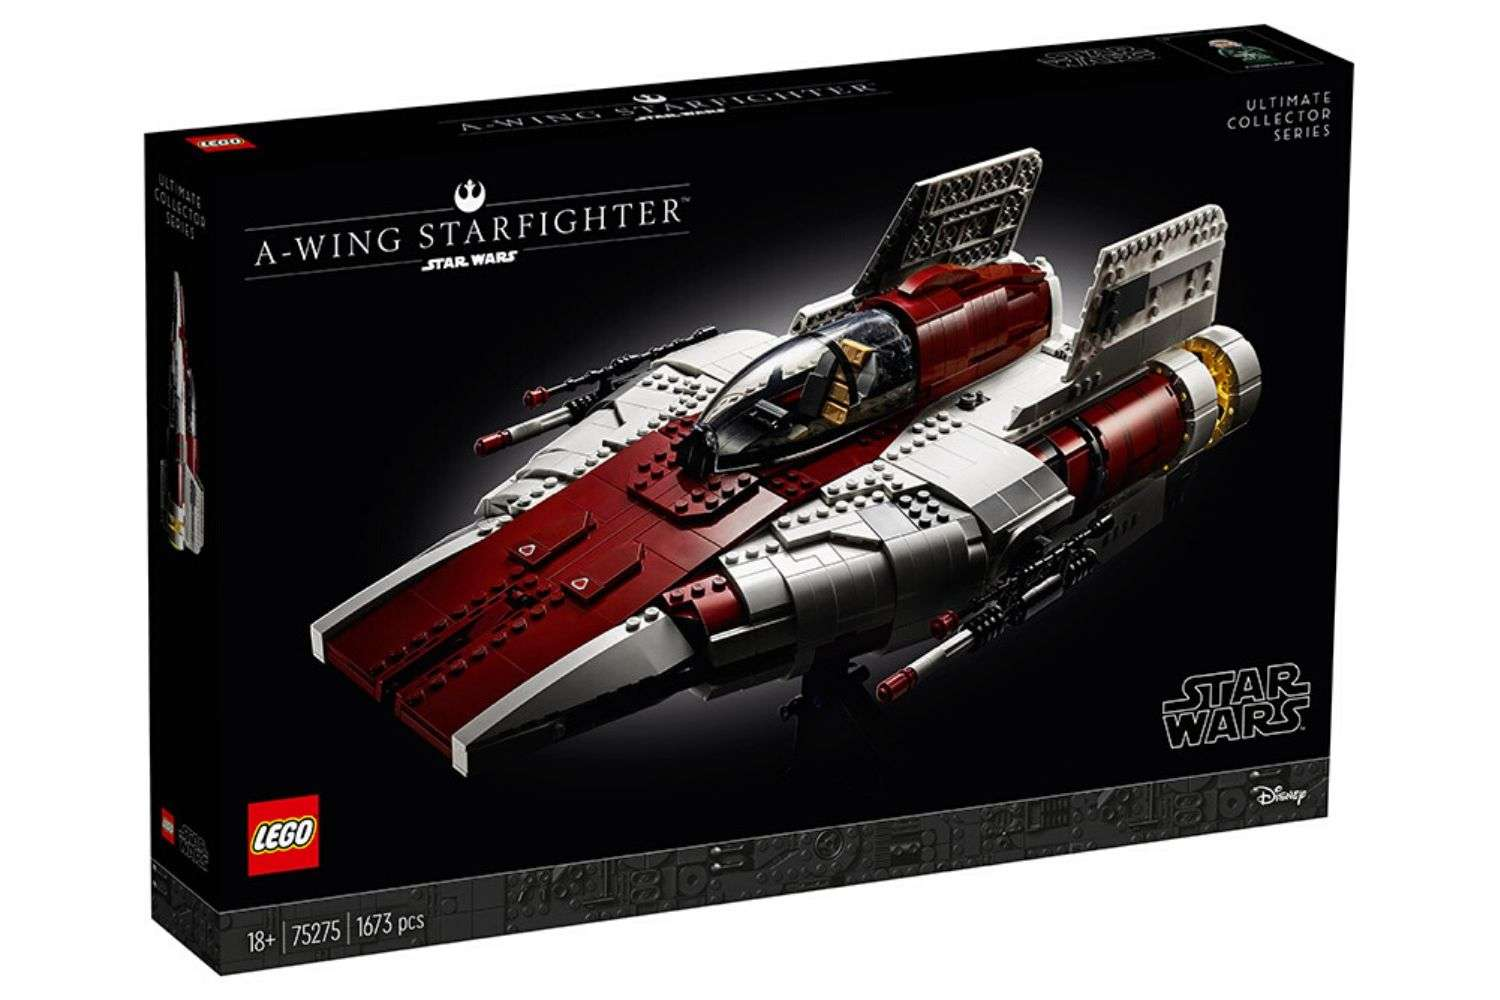 75275 LEGO Star Wars Ultimate Collector Series A-Wing Starfighter